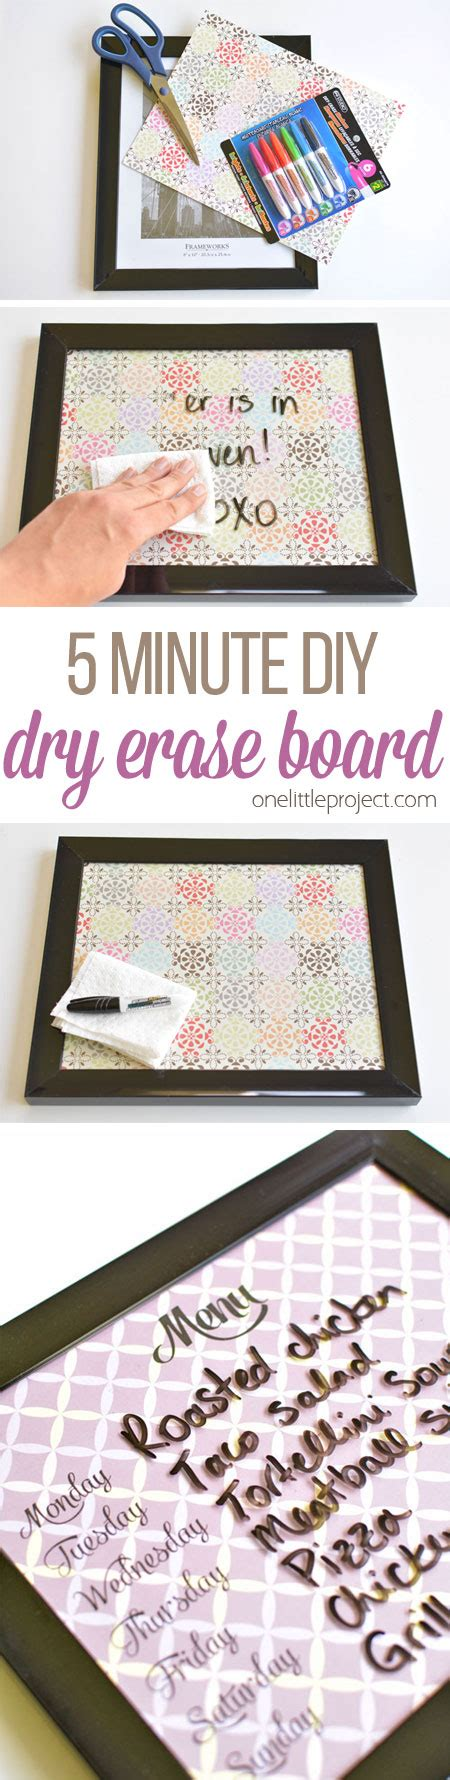 project whiteboard books 5 minute erase board easy diy whiteboards